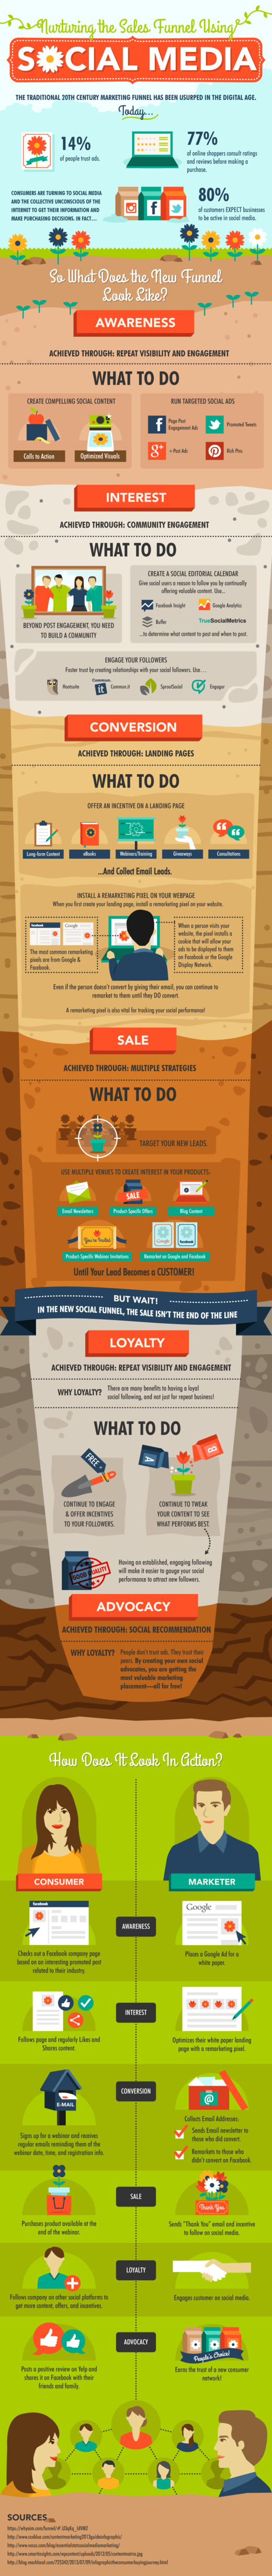 The Social Media Sales Funnel for lead generation